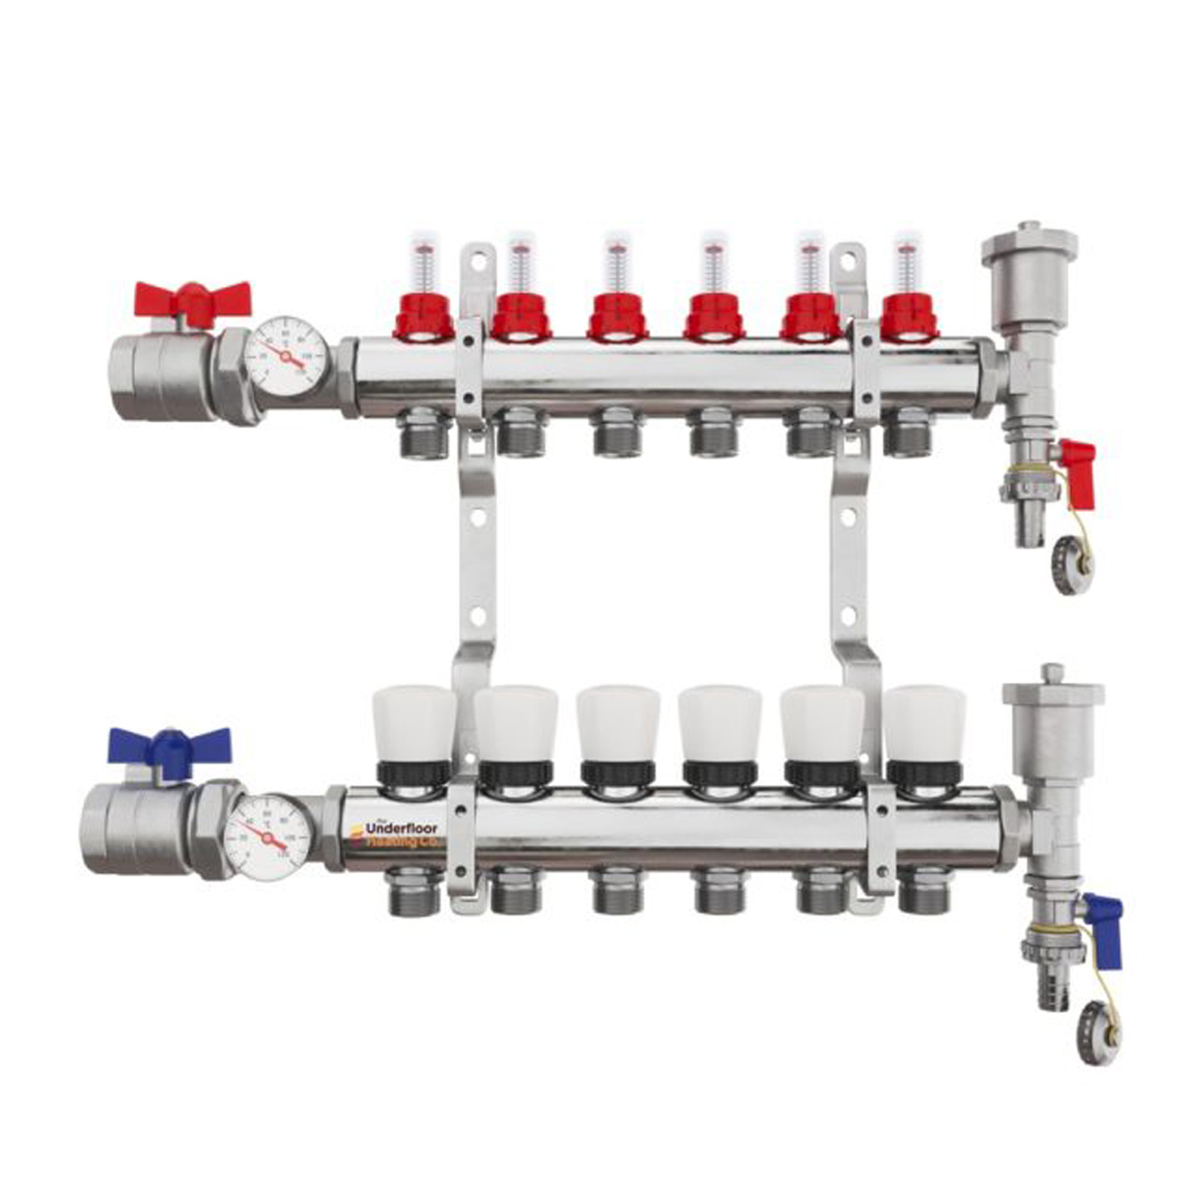 6 Port Brass Manifold With Pressure gauge and auto air vent